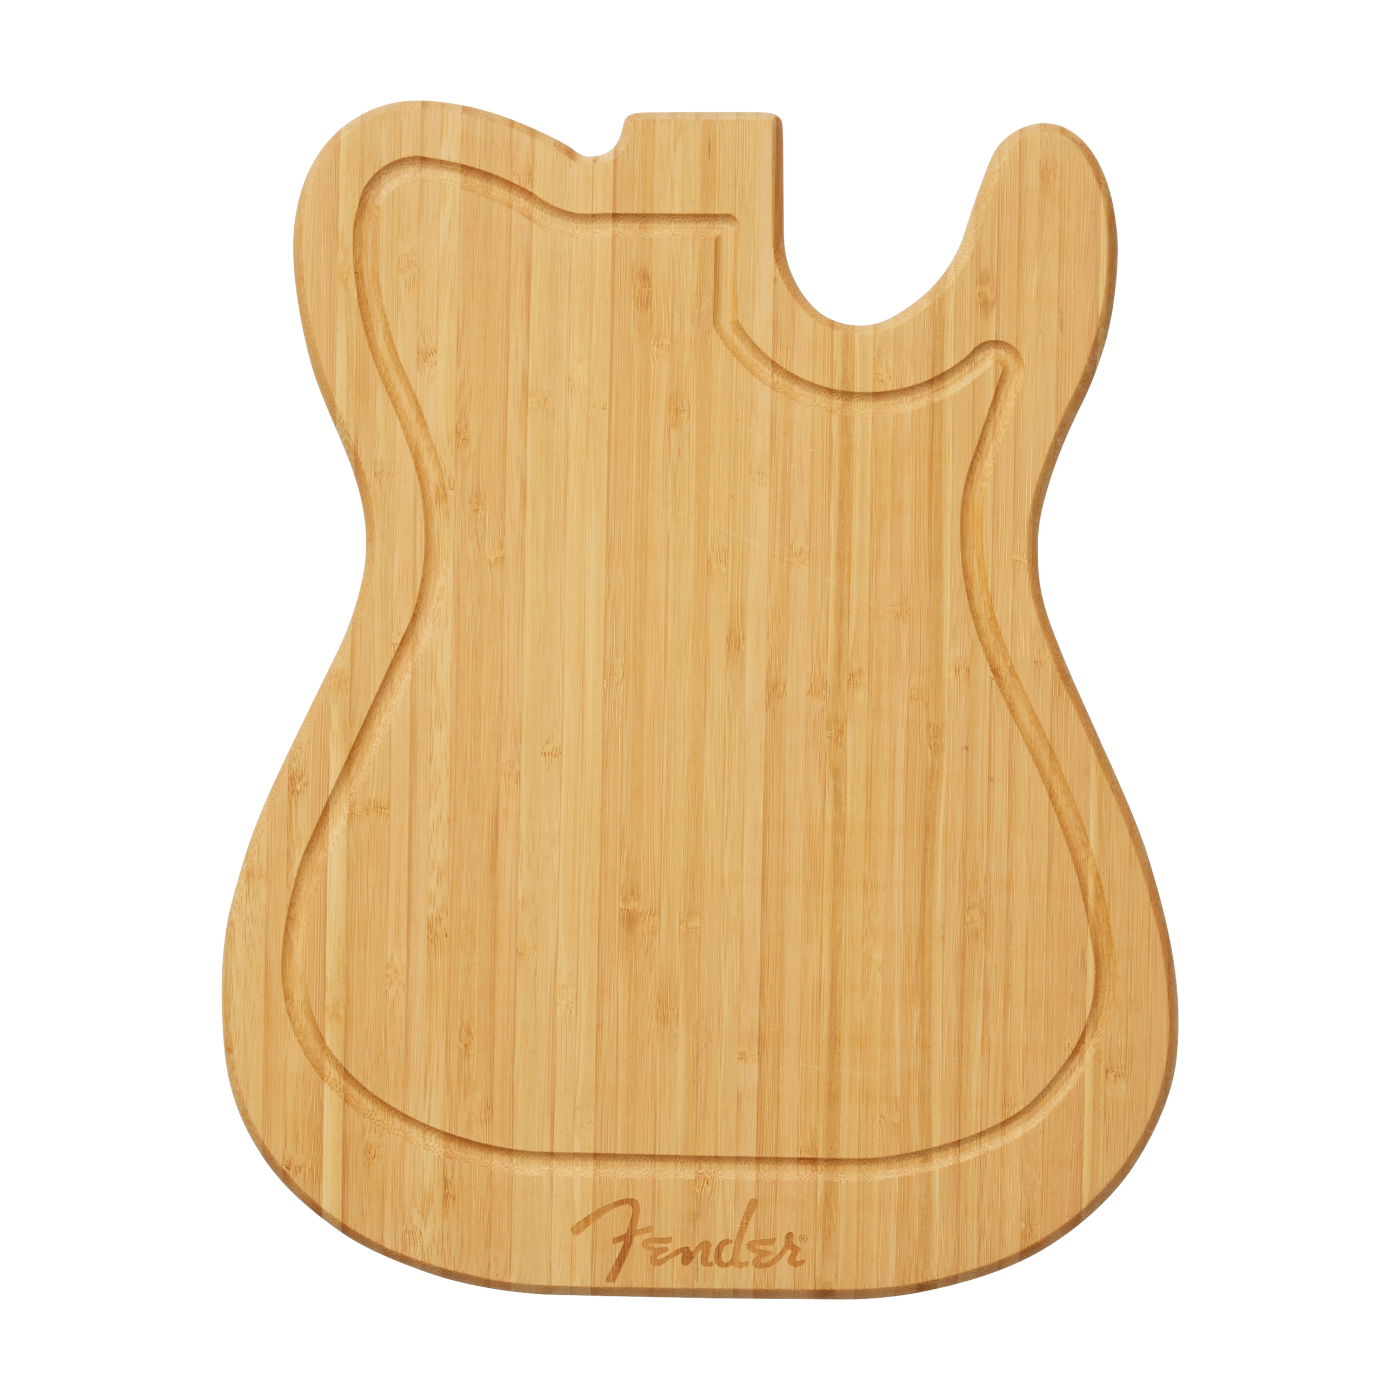 Fender NEW Fender Telecaster Cutting Board